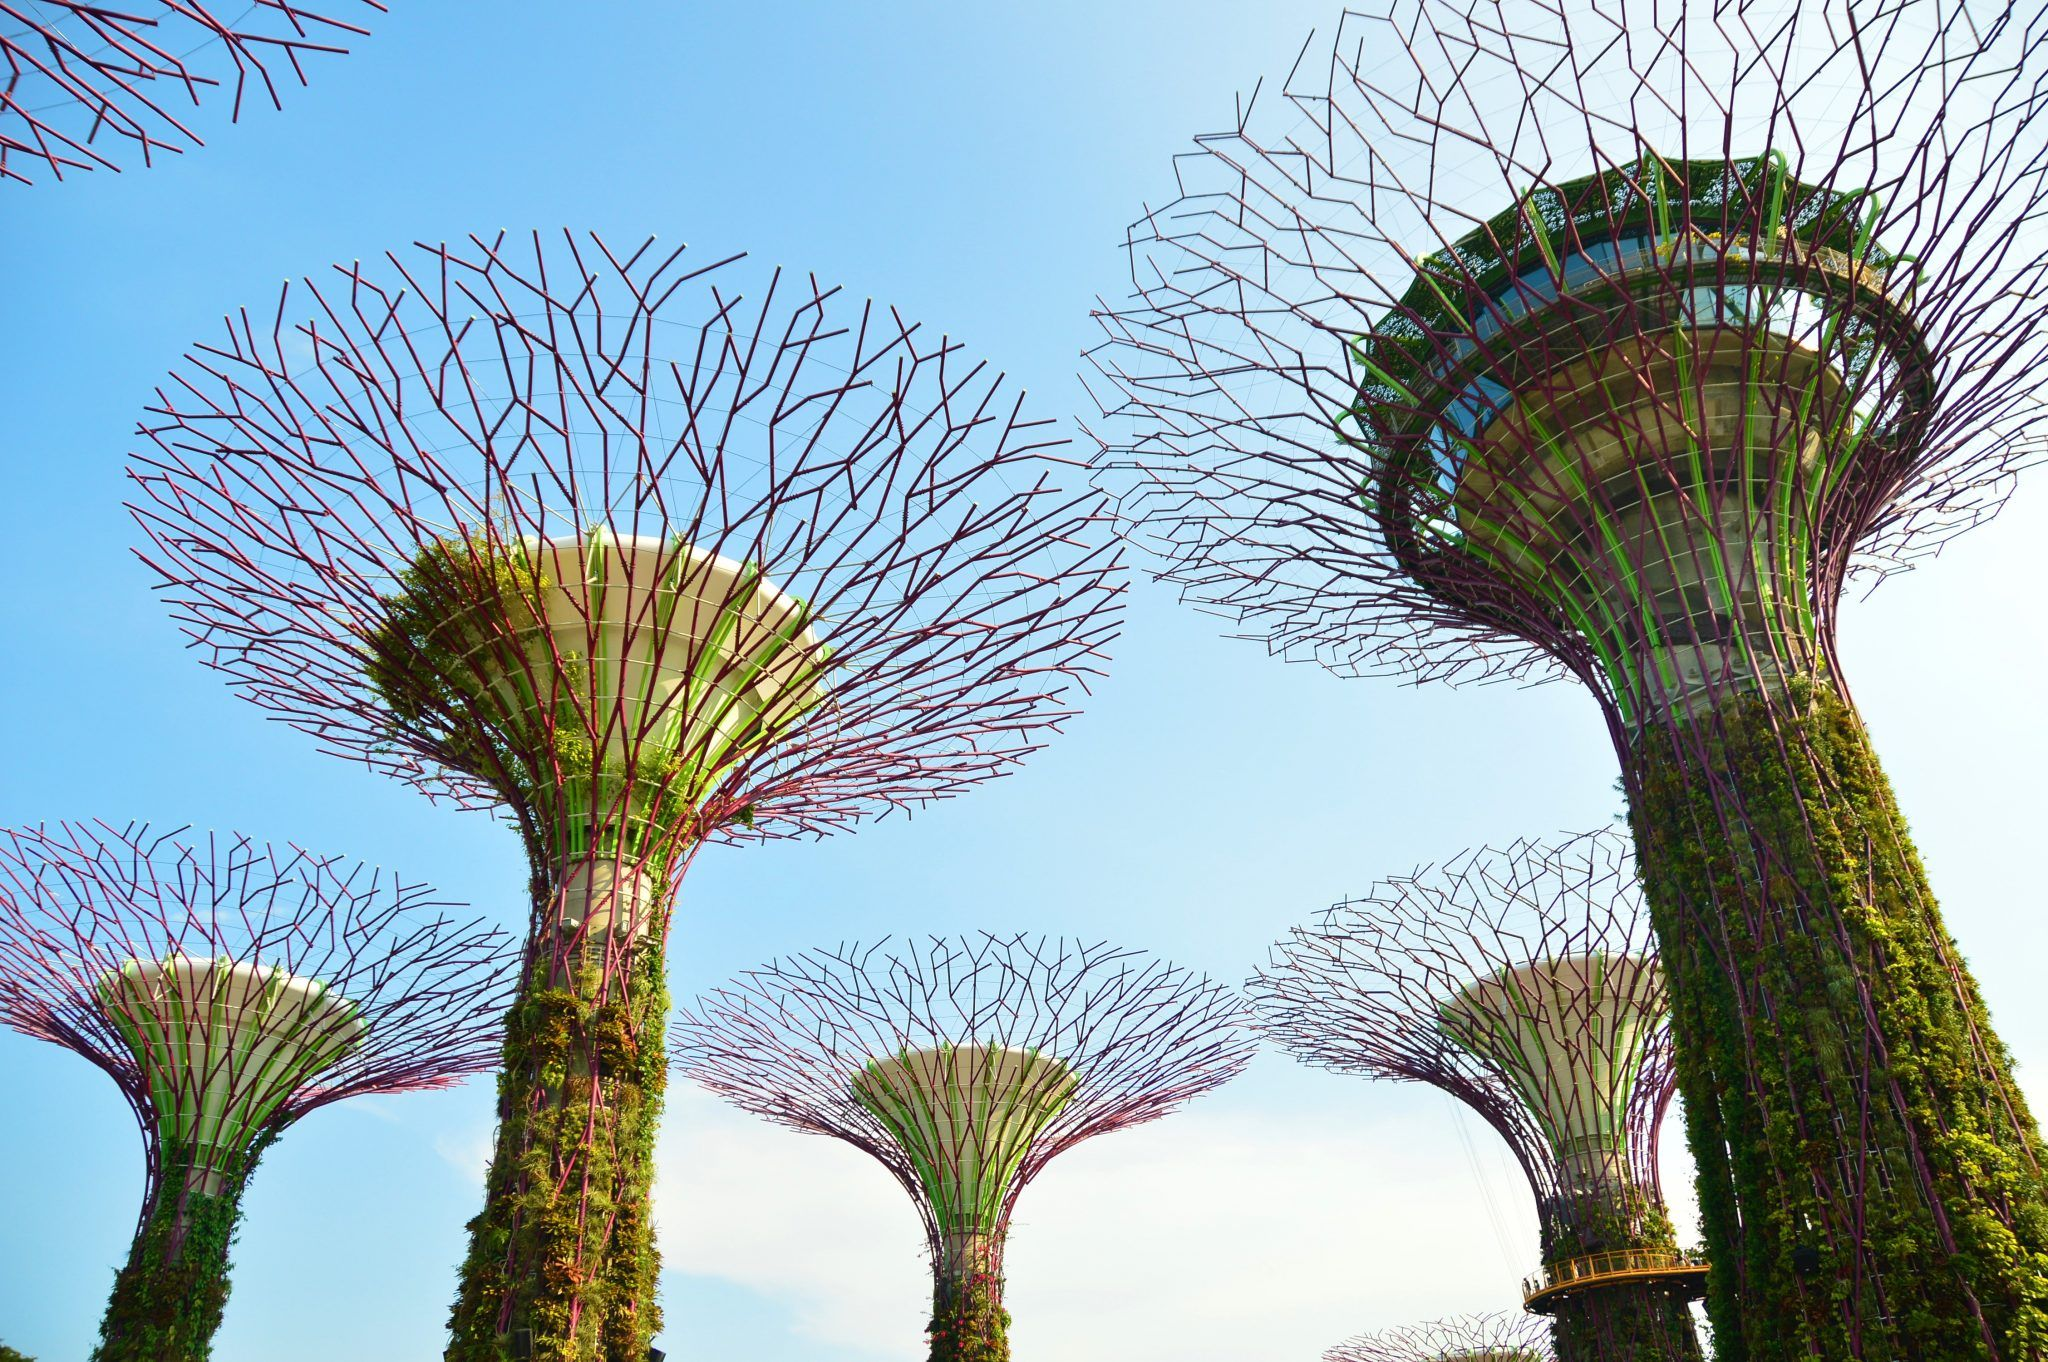 Super Trees in the Singapore Gardens by the Bay